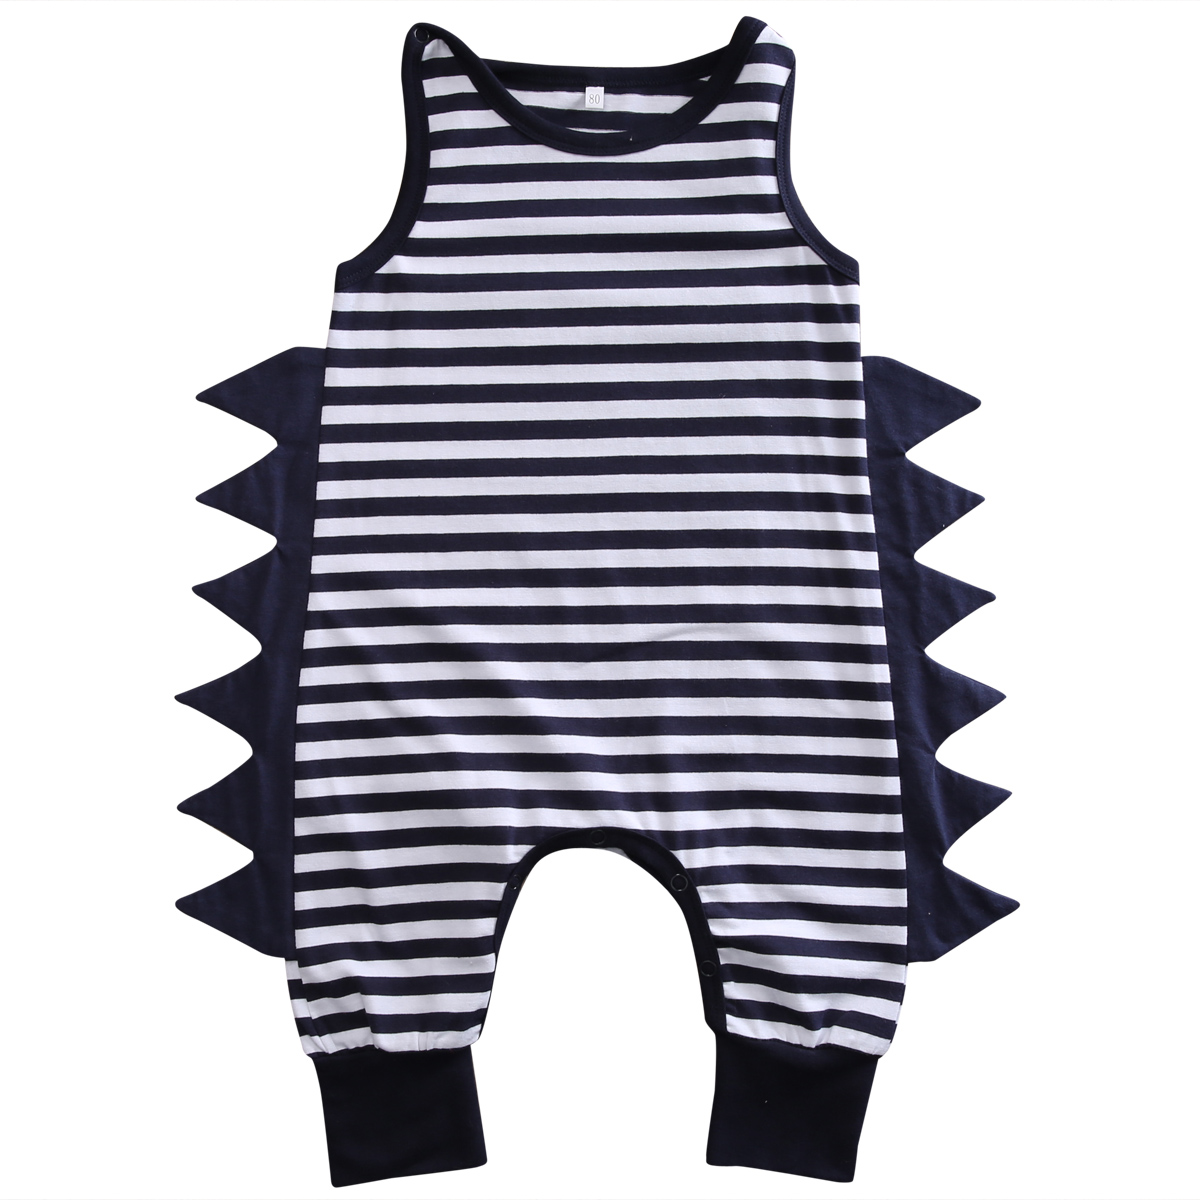 Cotton Newborn Baby Boy Clothes Sleeveless   Romper   Jumpsuit Playsuit Striped Outfit Clothing Boys Summer 0-24M